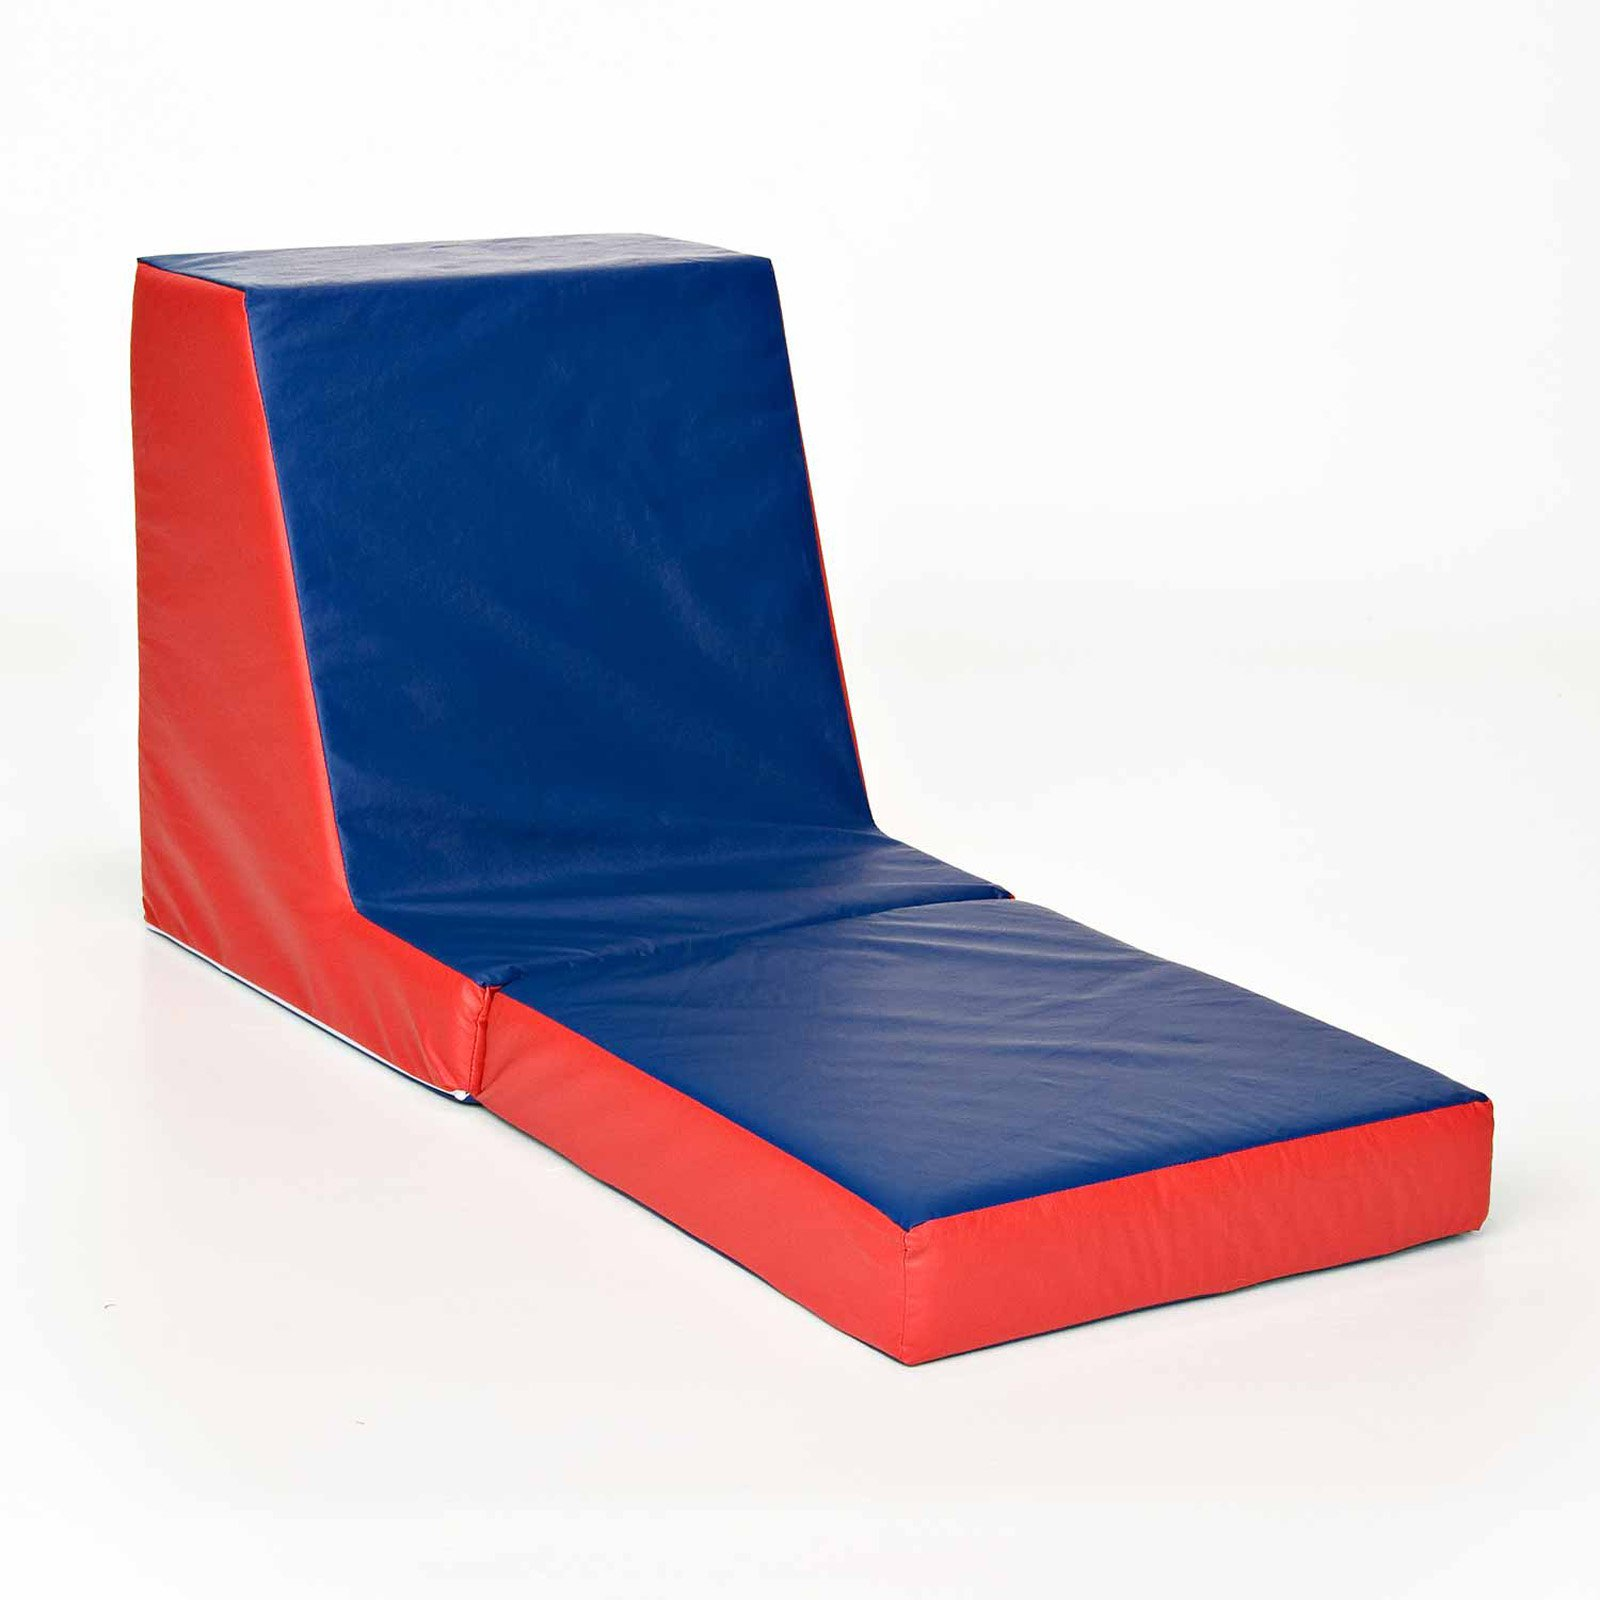 Foamnasium Video Floor Lounge Soft Play Chair